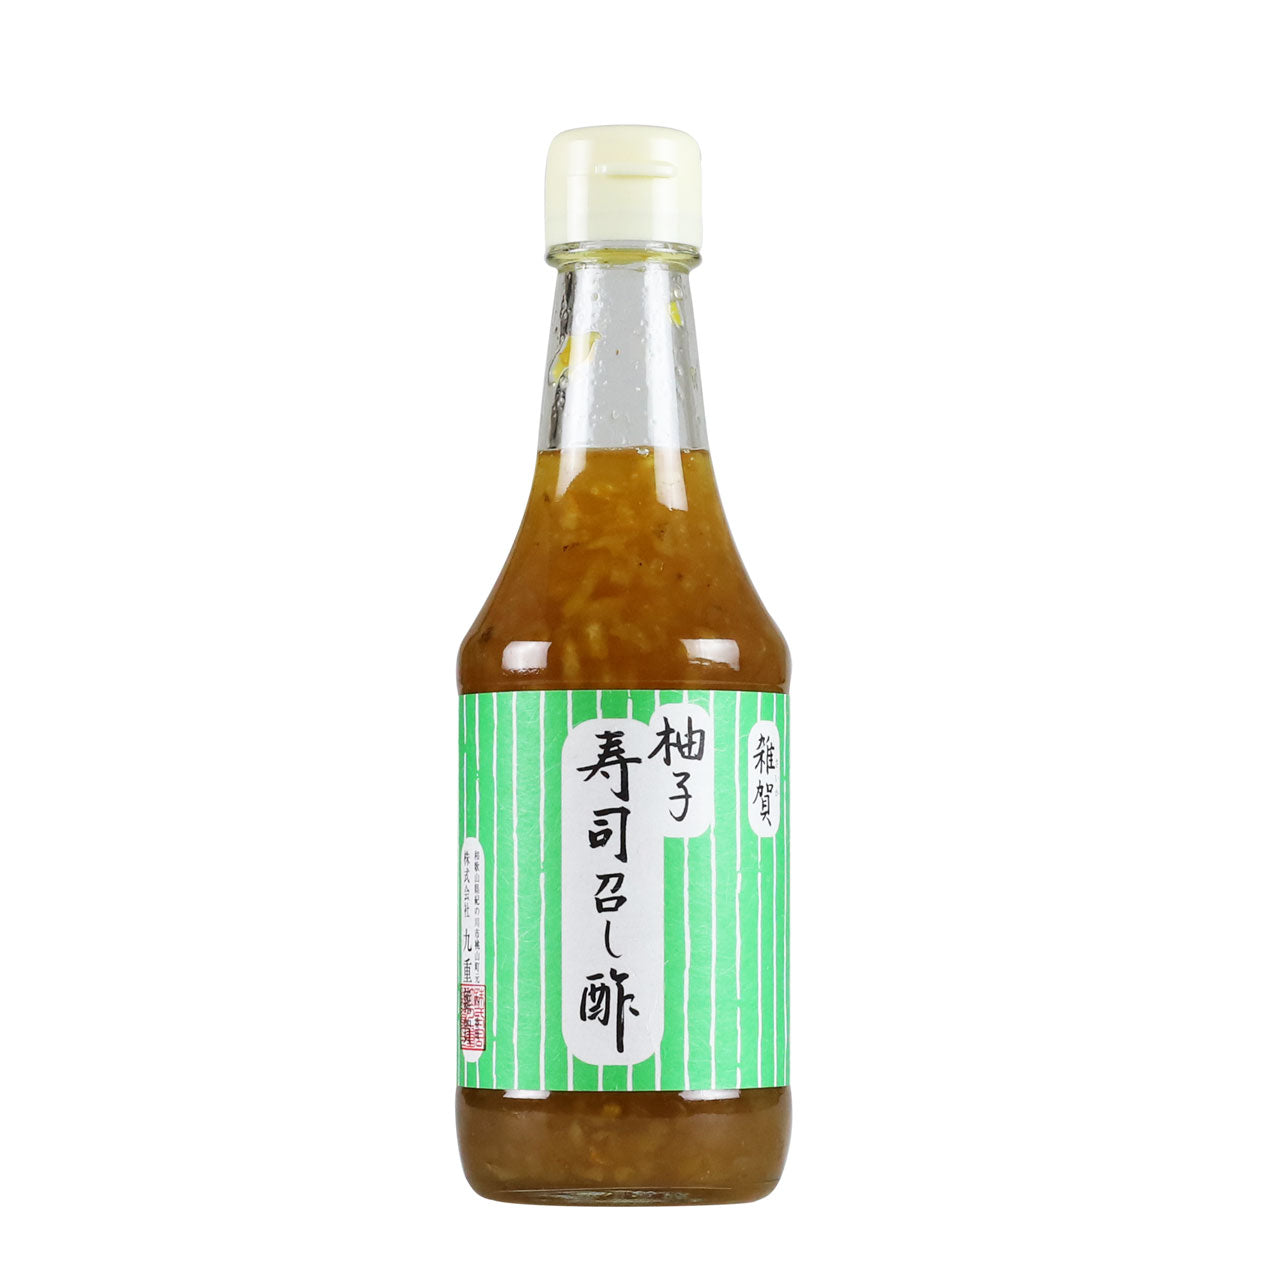 Saika Sushi Vinegar with Yuzu Japanese Citrus 10.1 fl oz / 300ml